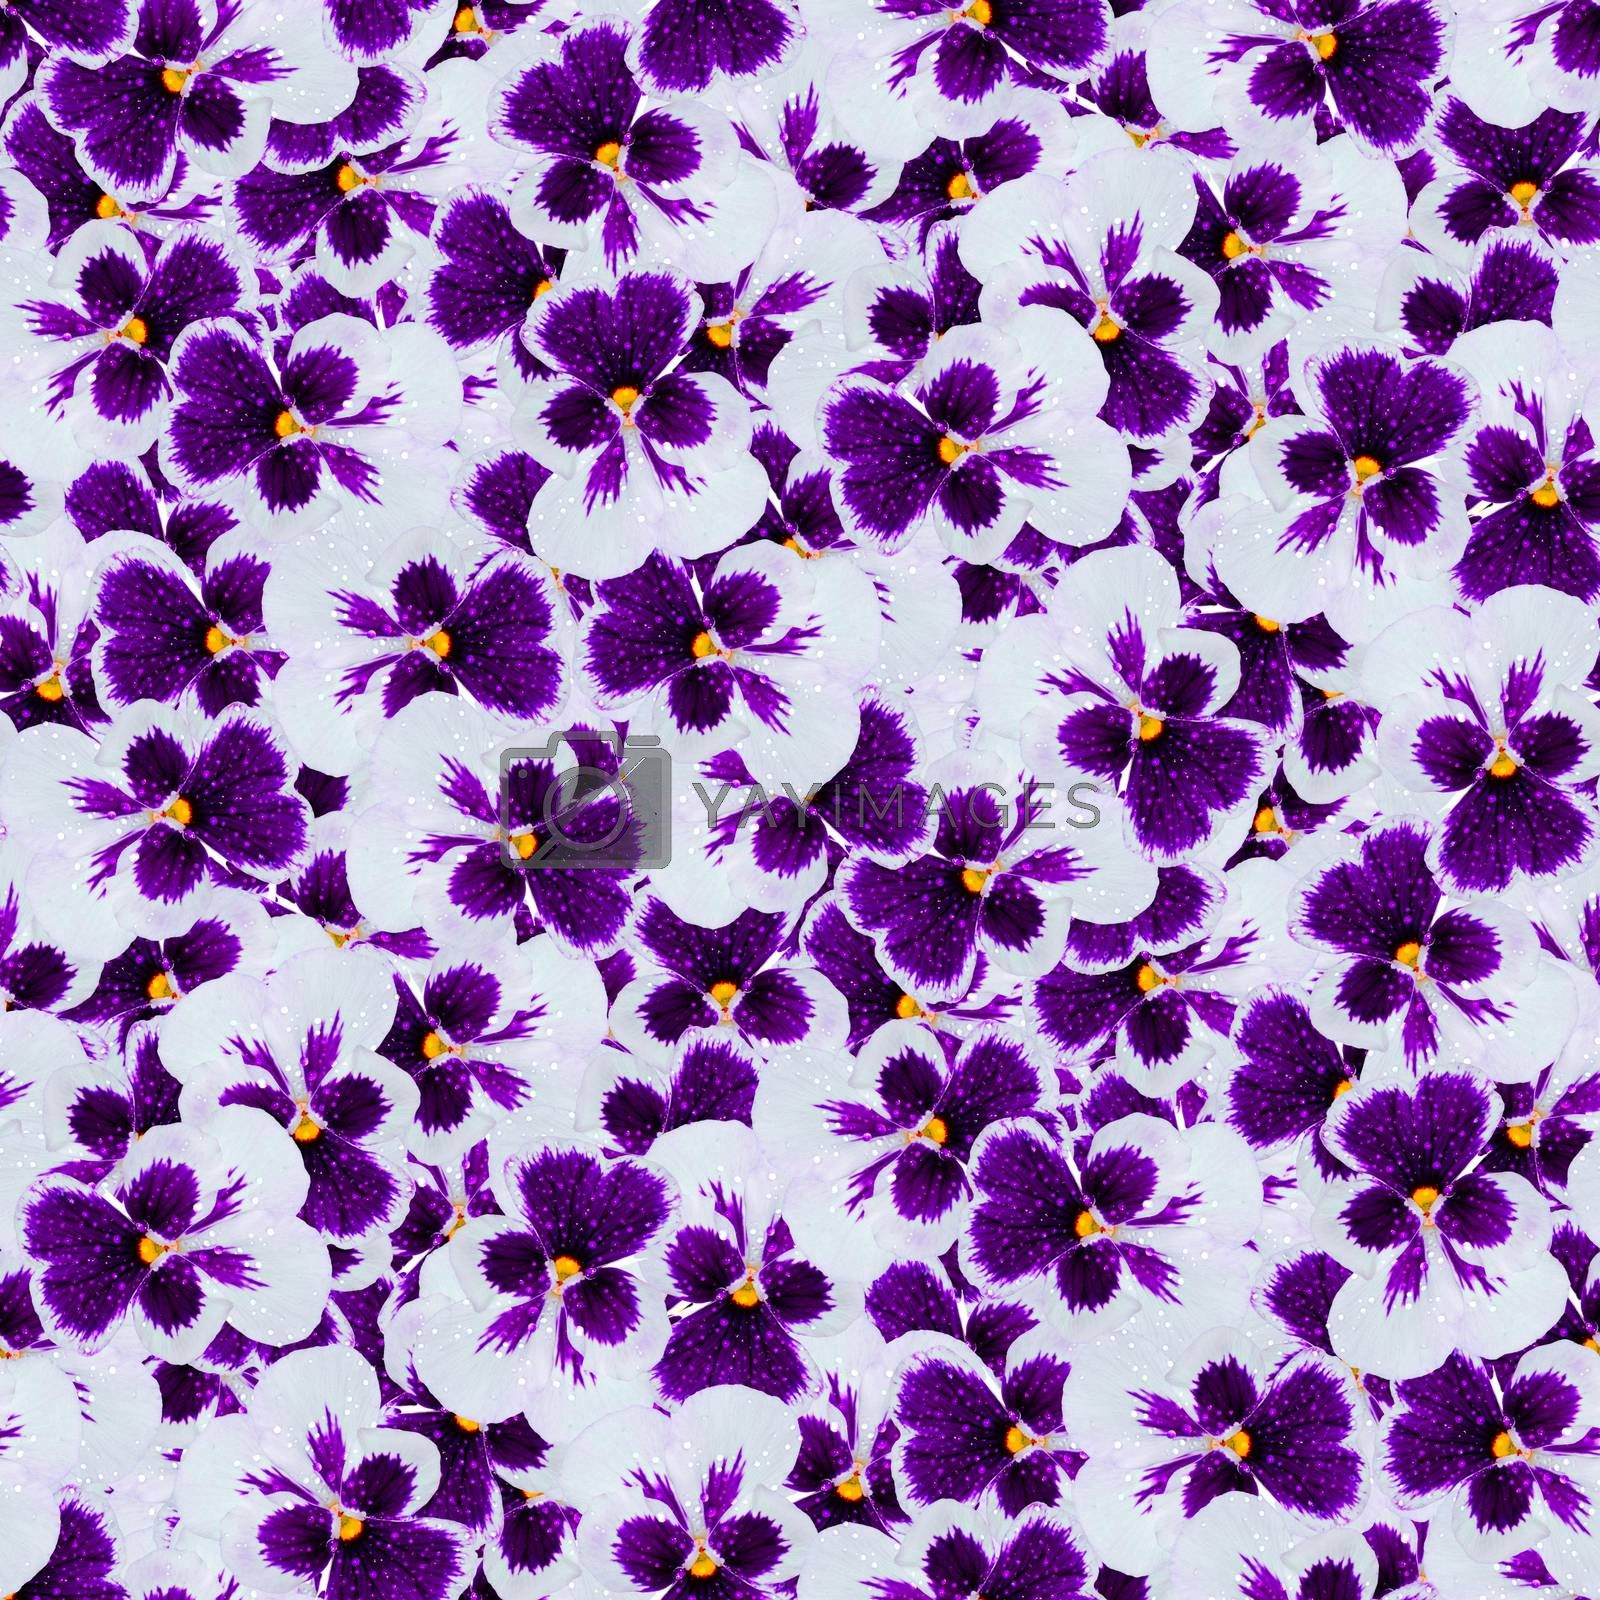 texture of a seamless pattern with colors, blue pansies decorative design elements